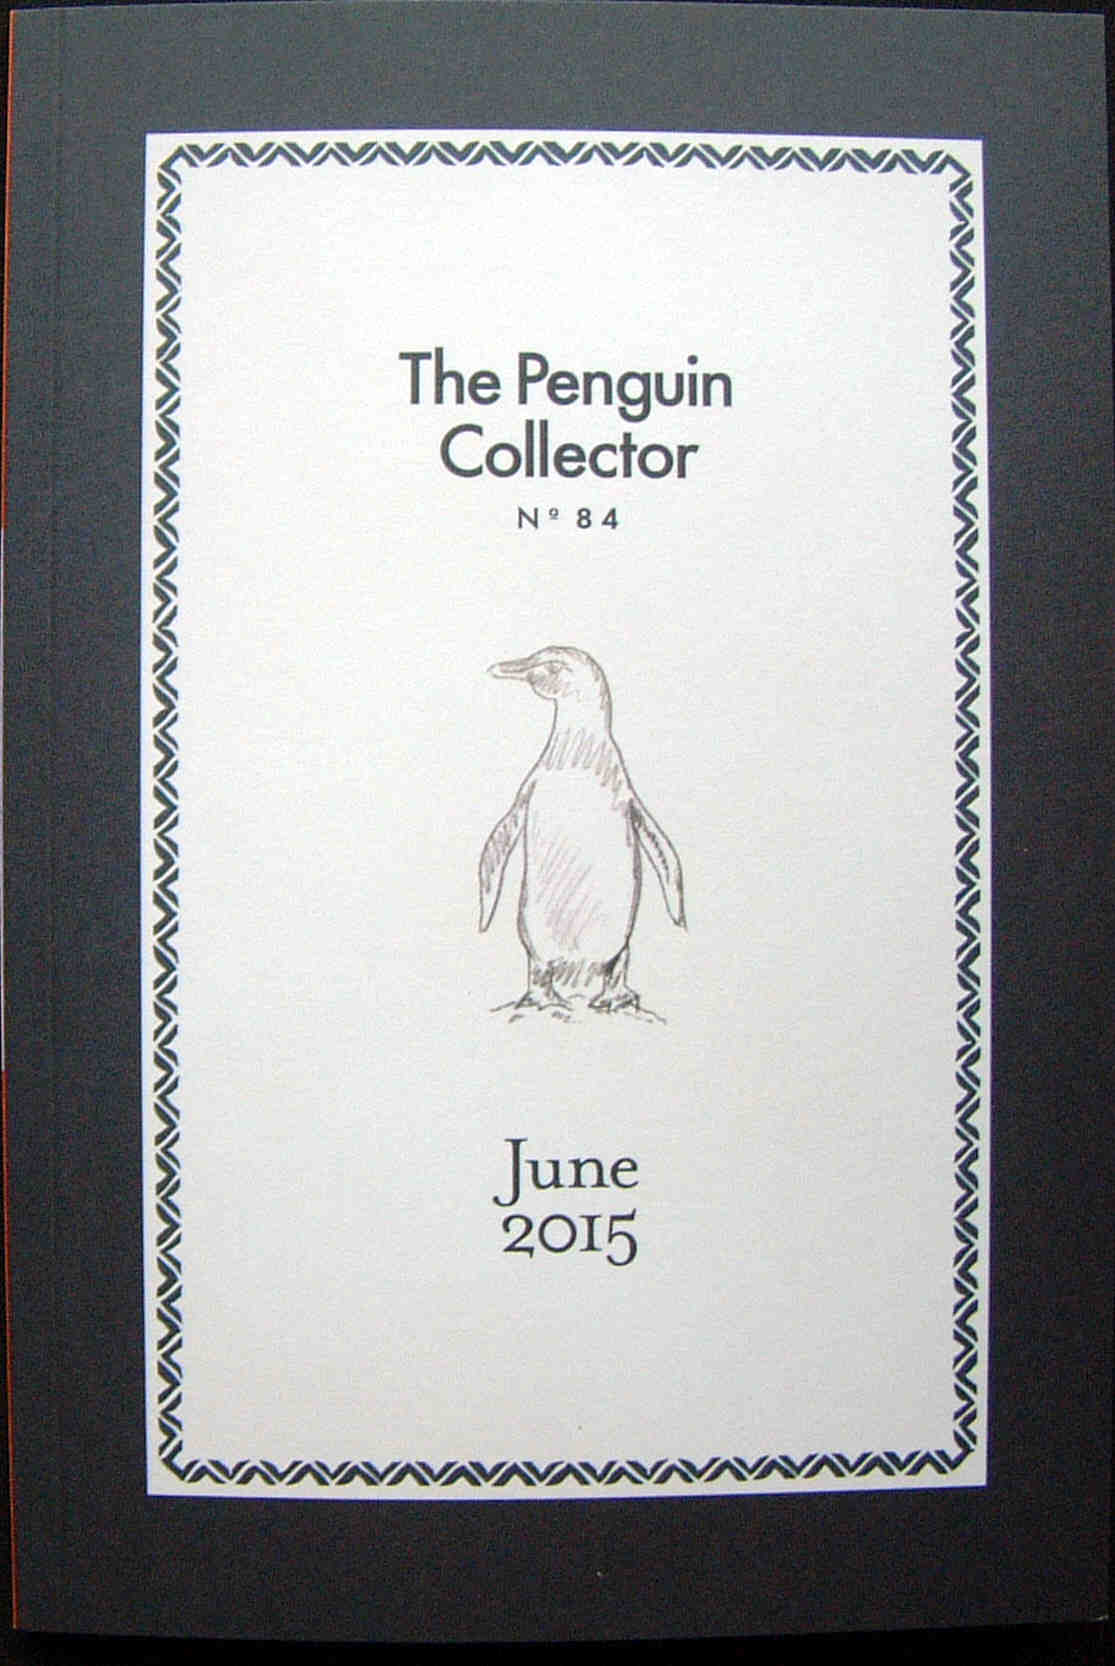 The Penguin Collector 84 Image